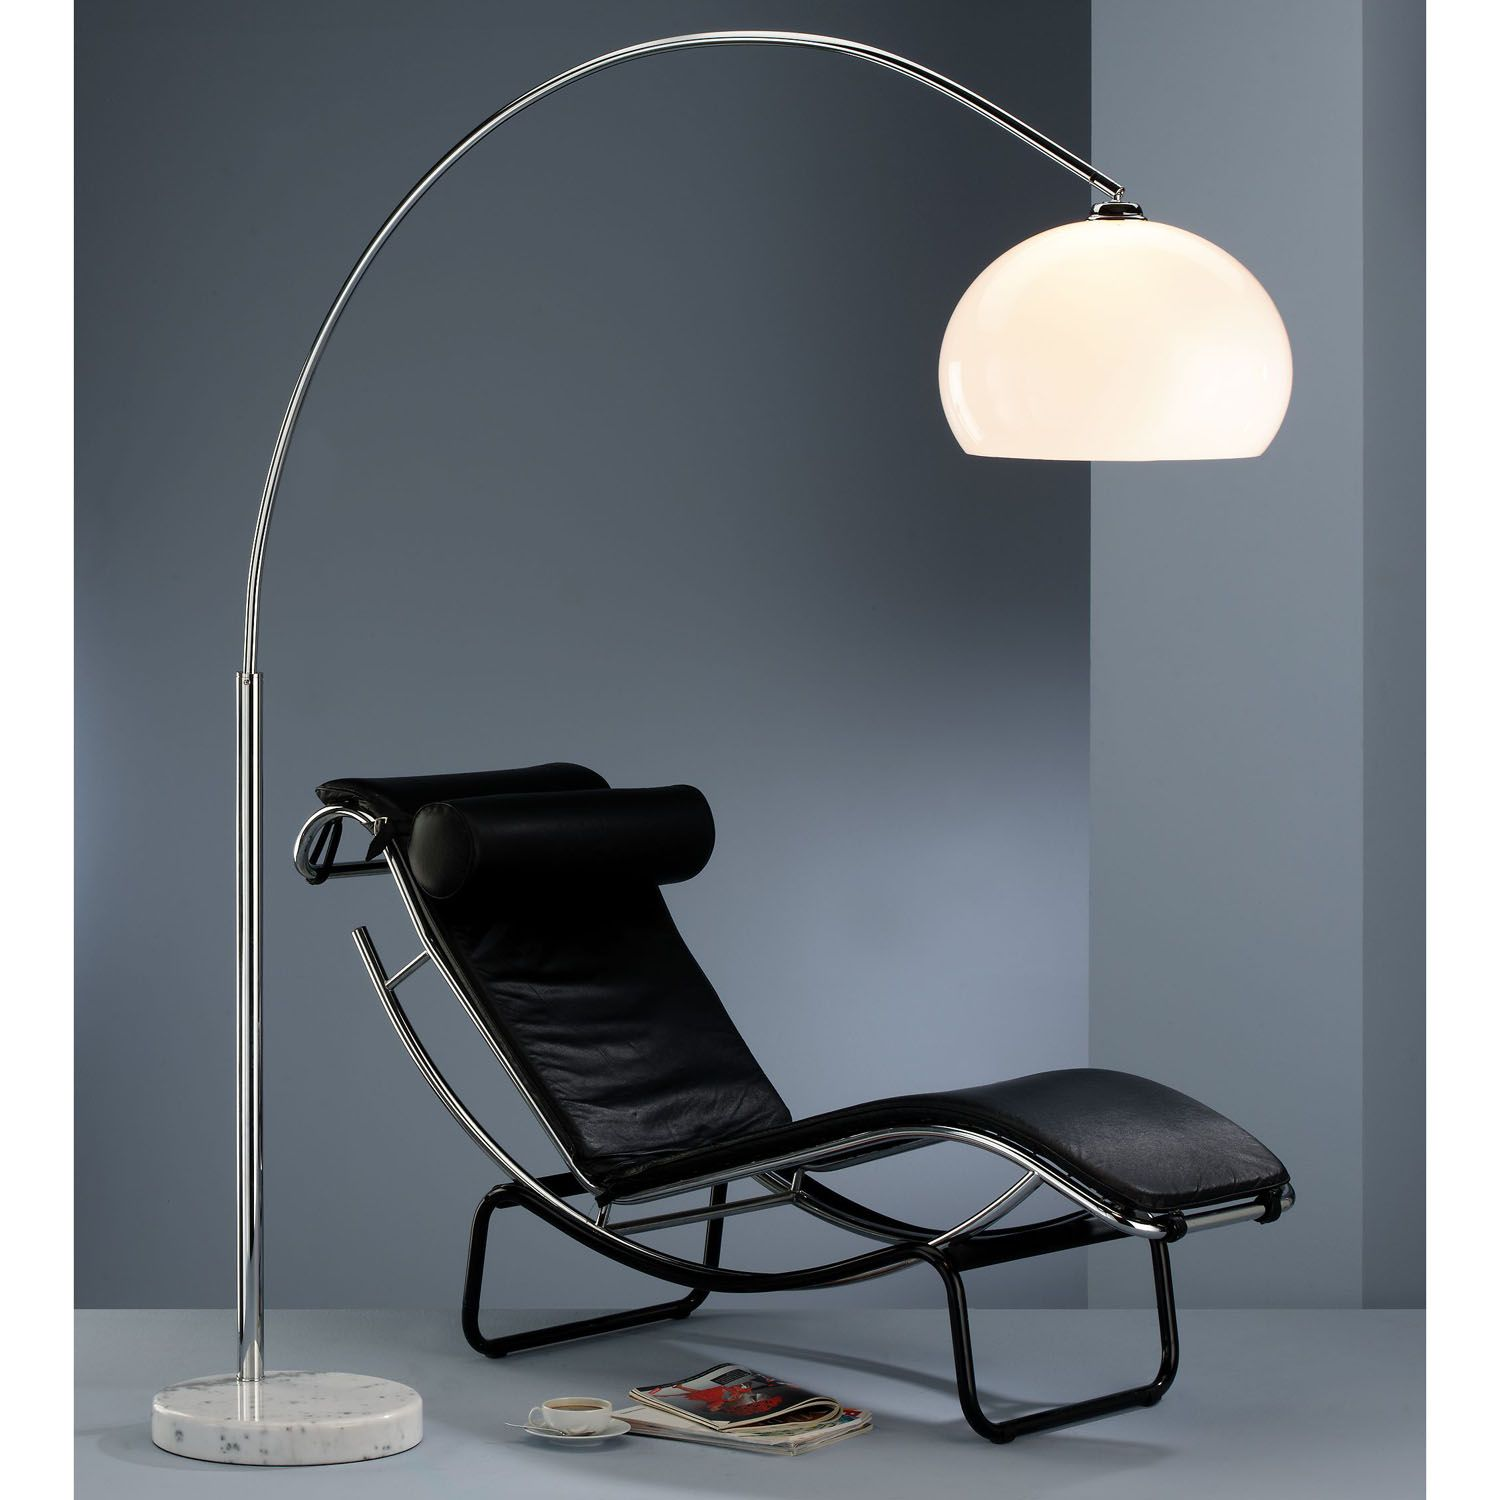 Awesome arc lamp with white glass lampshde and black leather awesome arc lamp with white glass lampshde and black leather lounge chair geotapseo Gallery